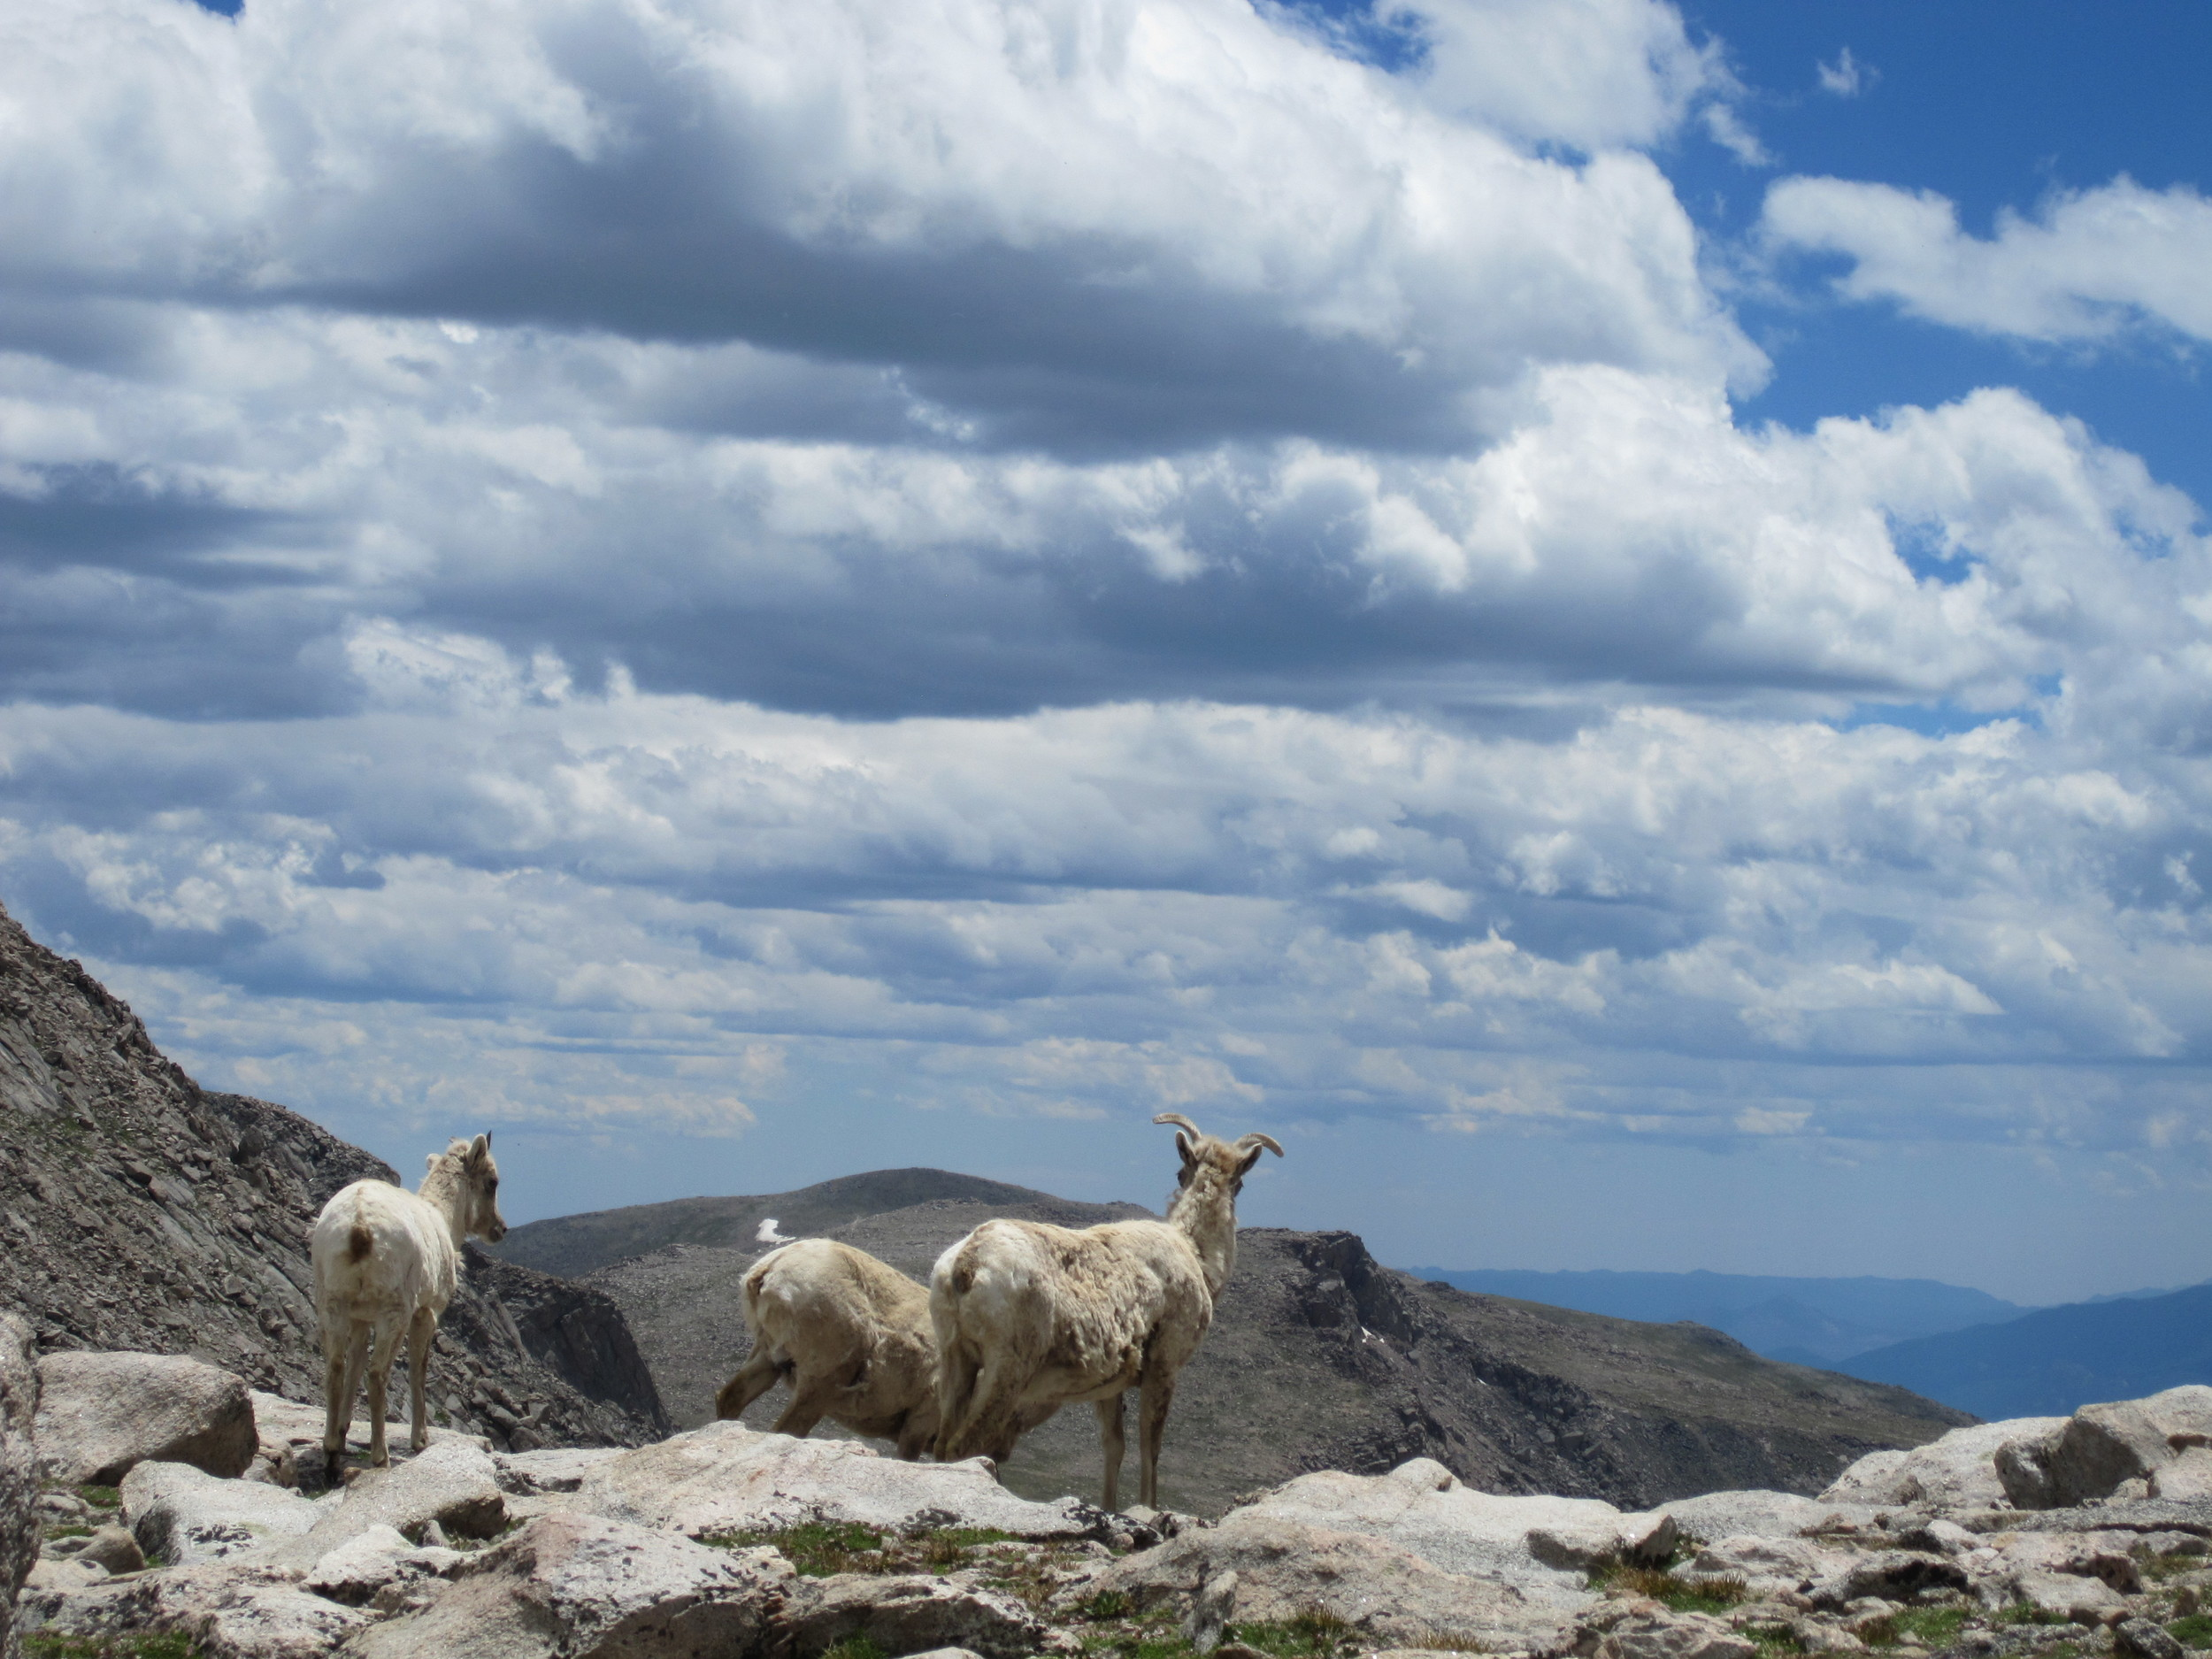 A photo of mountain goats near Mt. Bierstadt